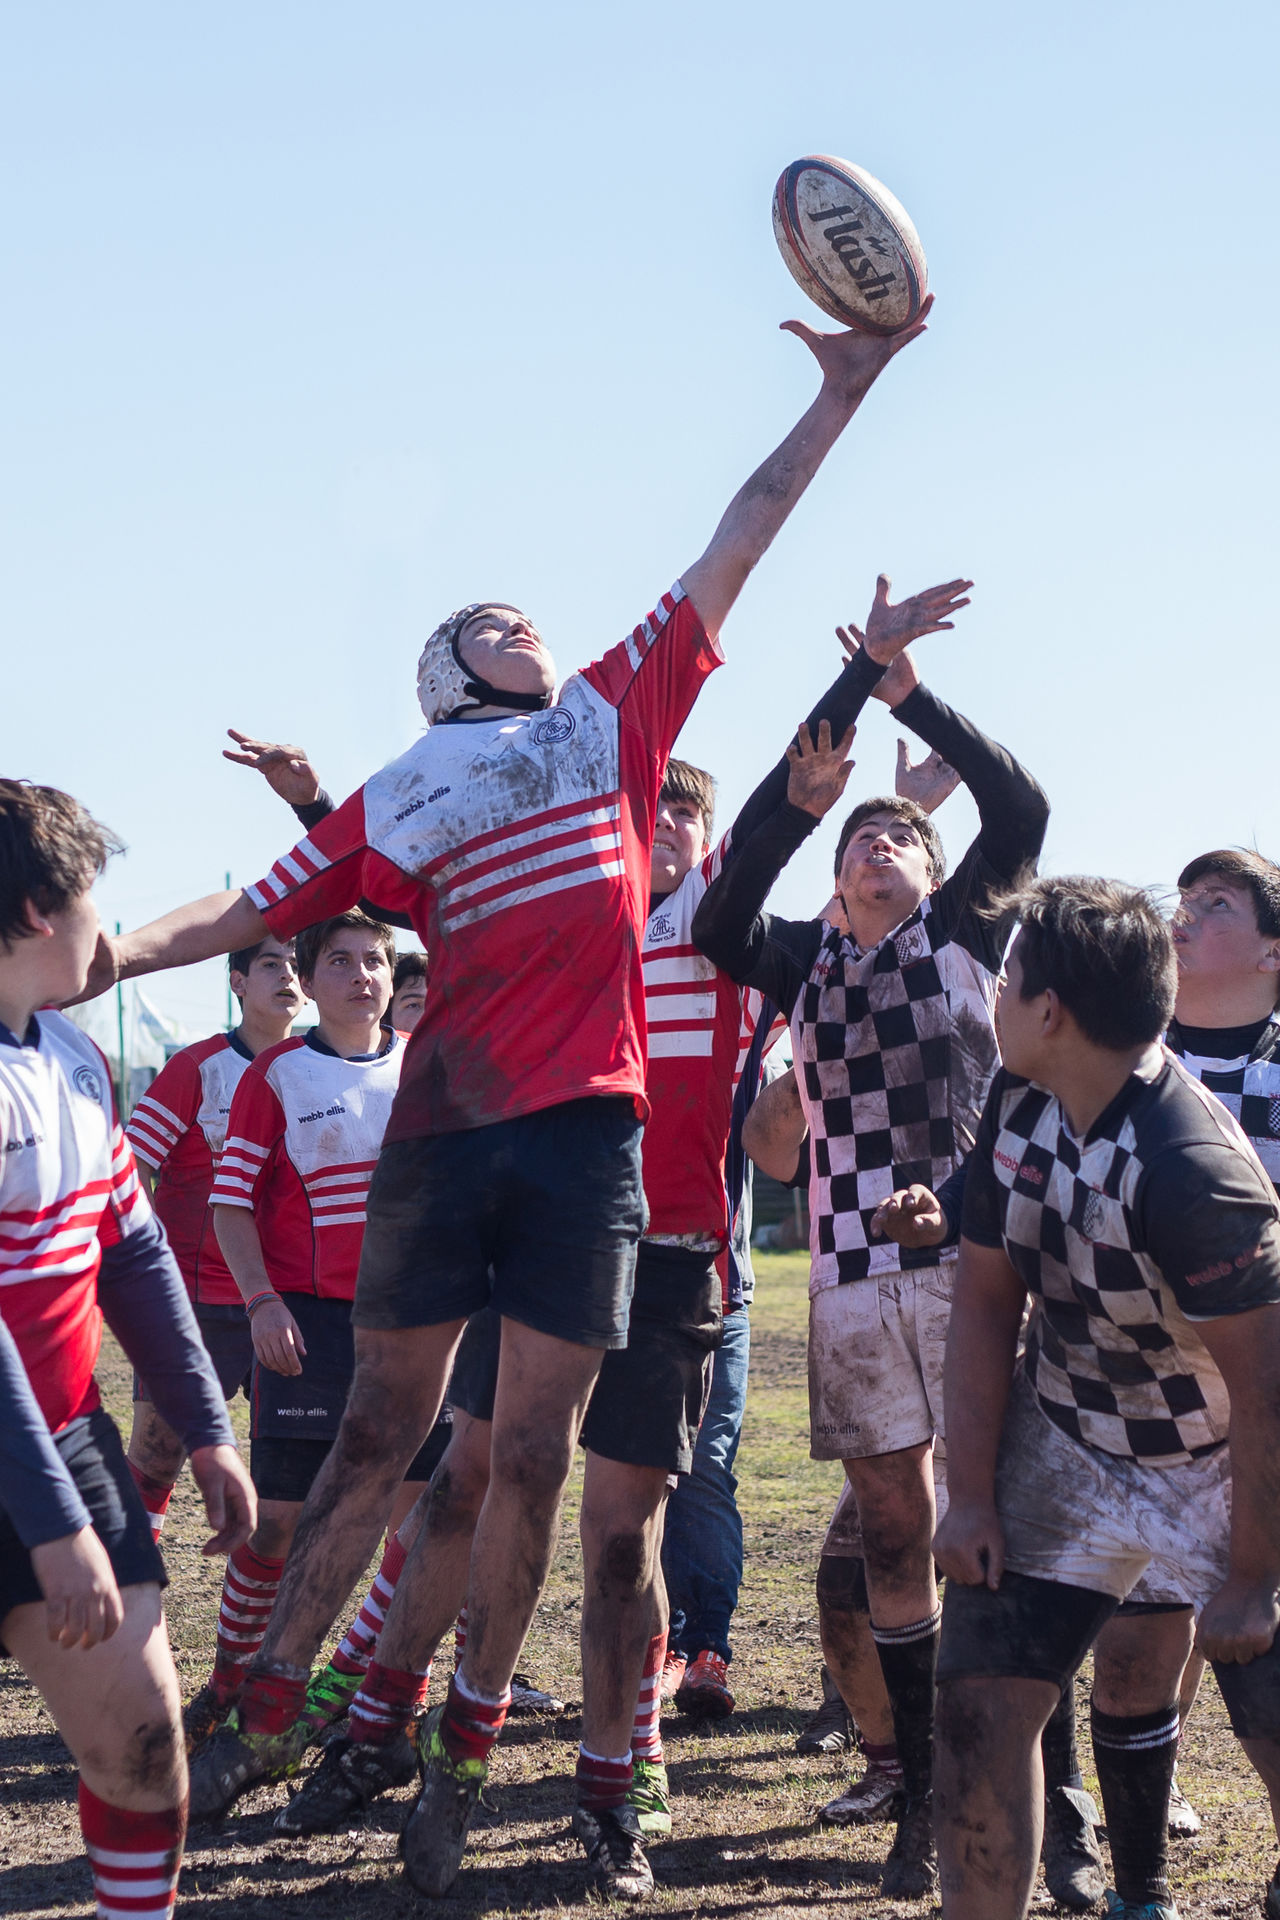 Boys Casual Clothing Childhood Clear Sky Day Deporte Full Length Giles, Leisure Activity Lifestyles Low Angle View Medium Group Of People Men Outdoors People Playing Real People Rugby Sky Sport Sports Team Standing Togetherness First Eyeem Photo